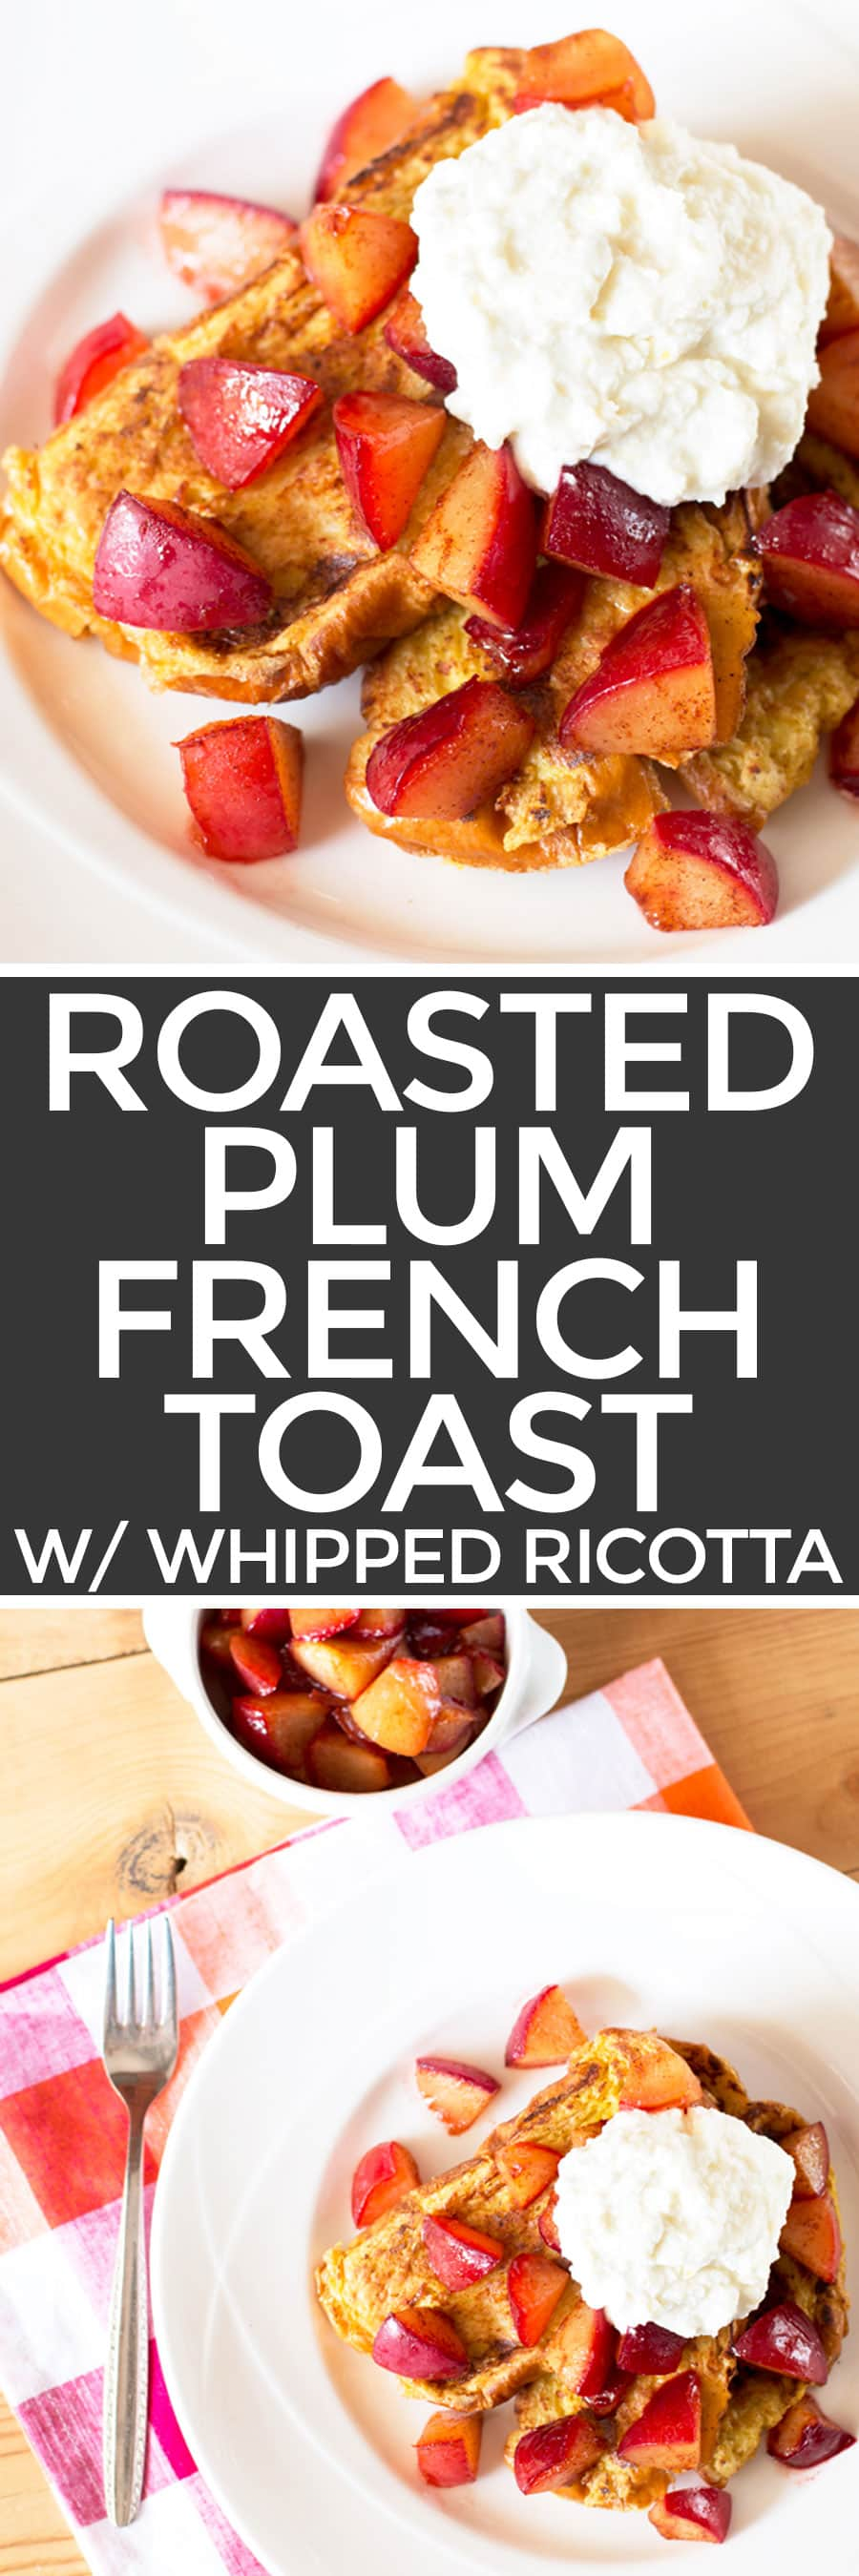 Roasted Plum French Toast | cakenknife.com